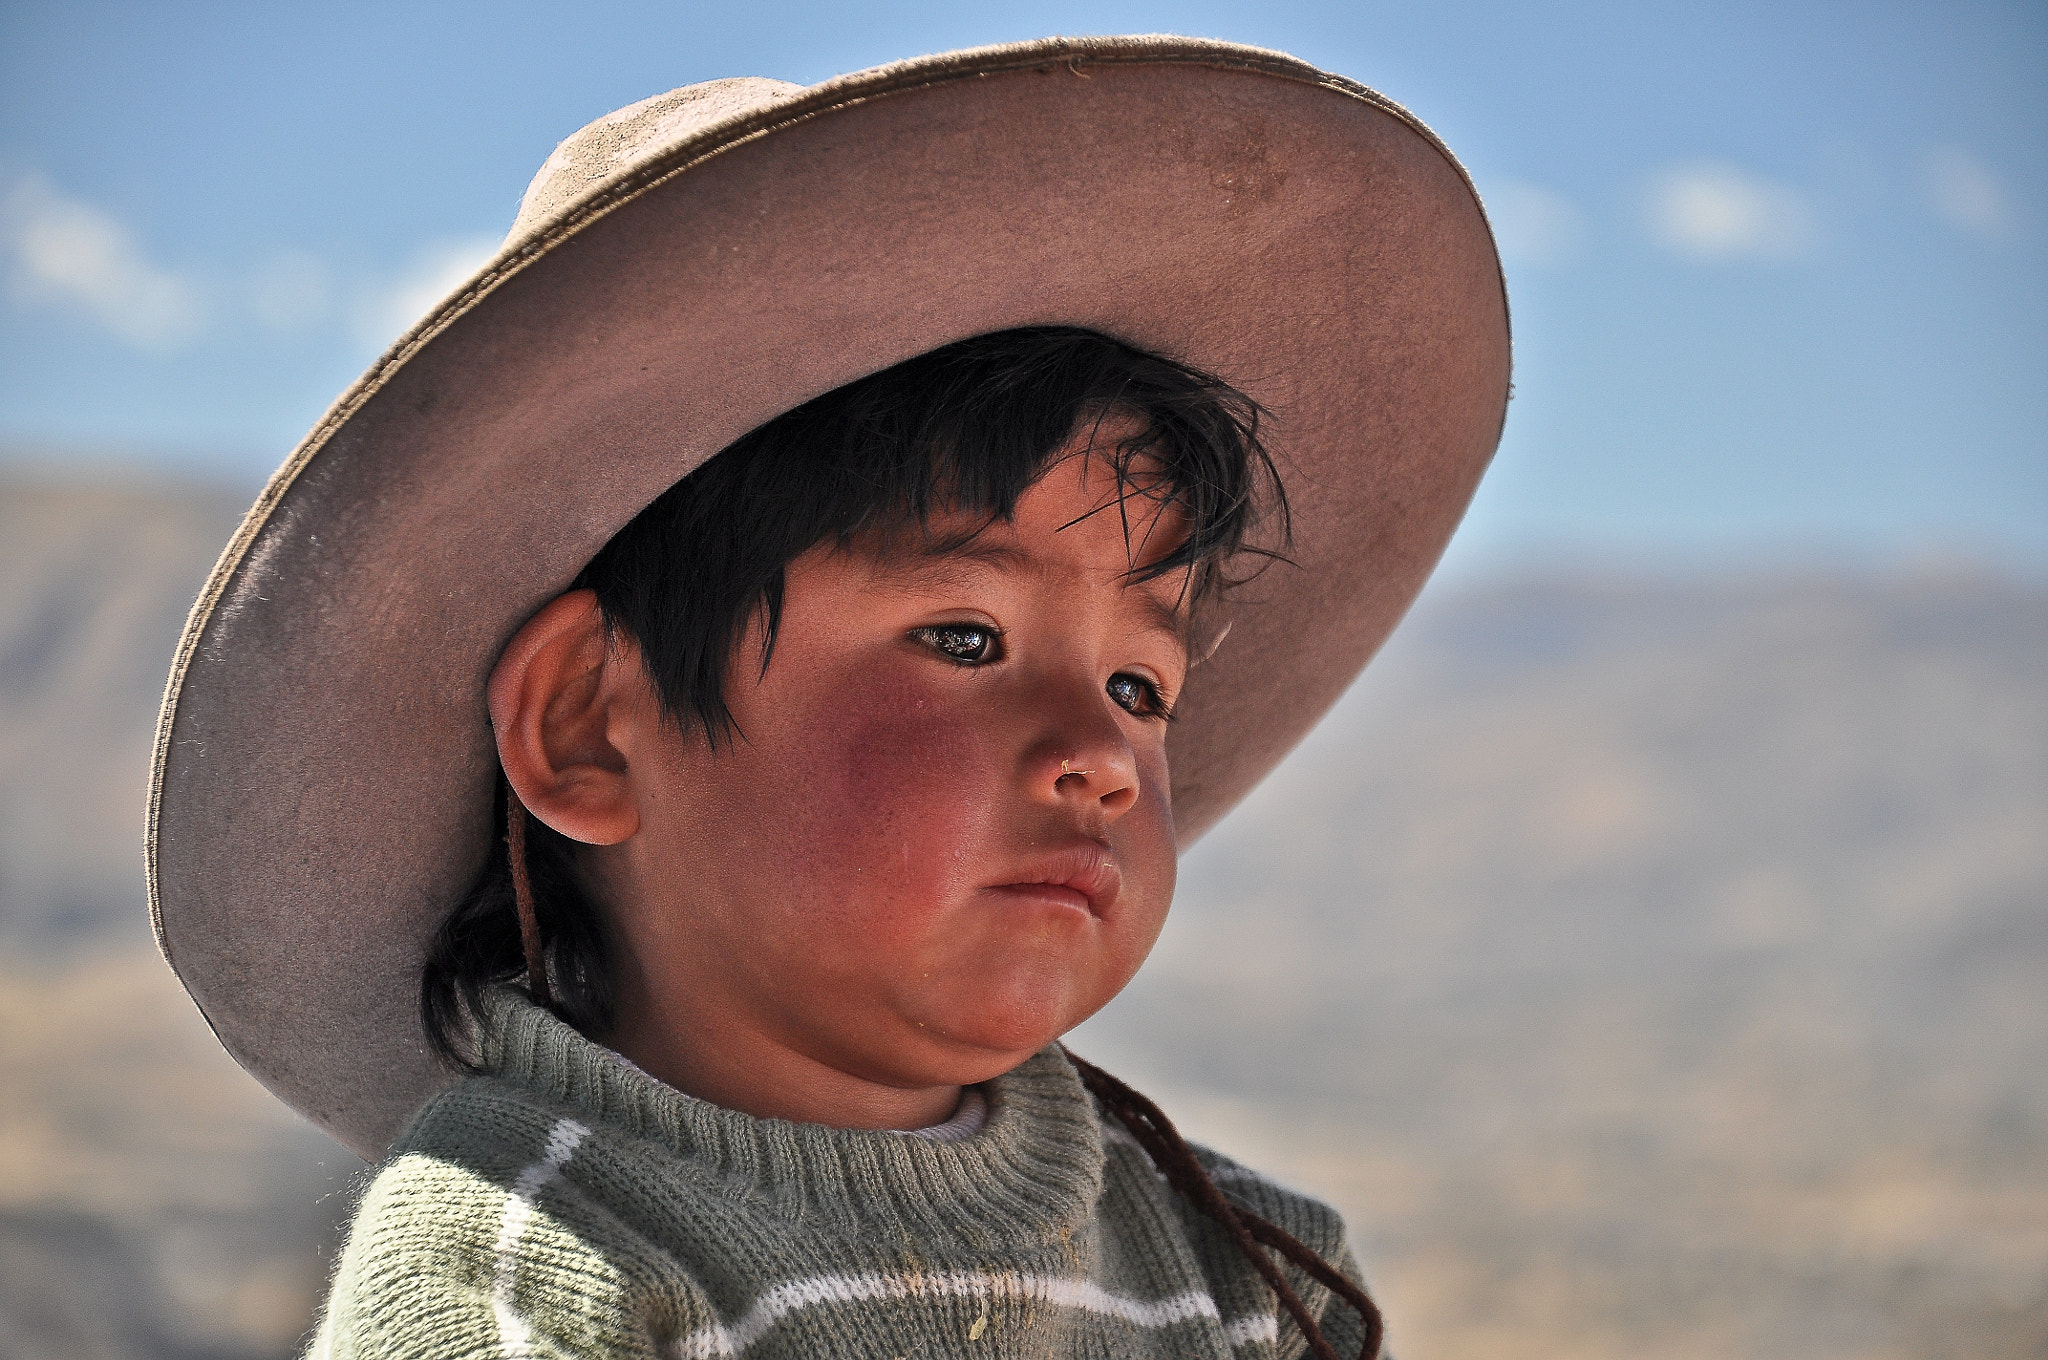 Photograph The sad look of the Colca boy by Rui Carvalho on 500px